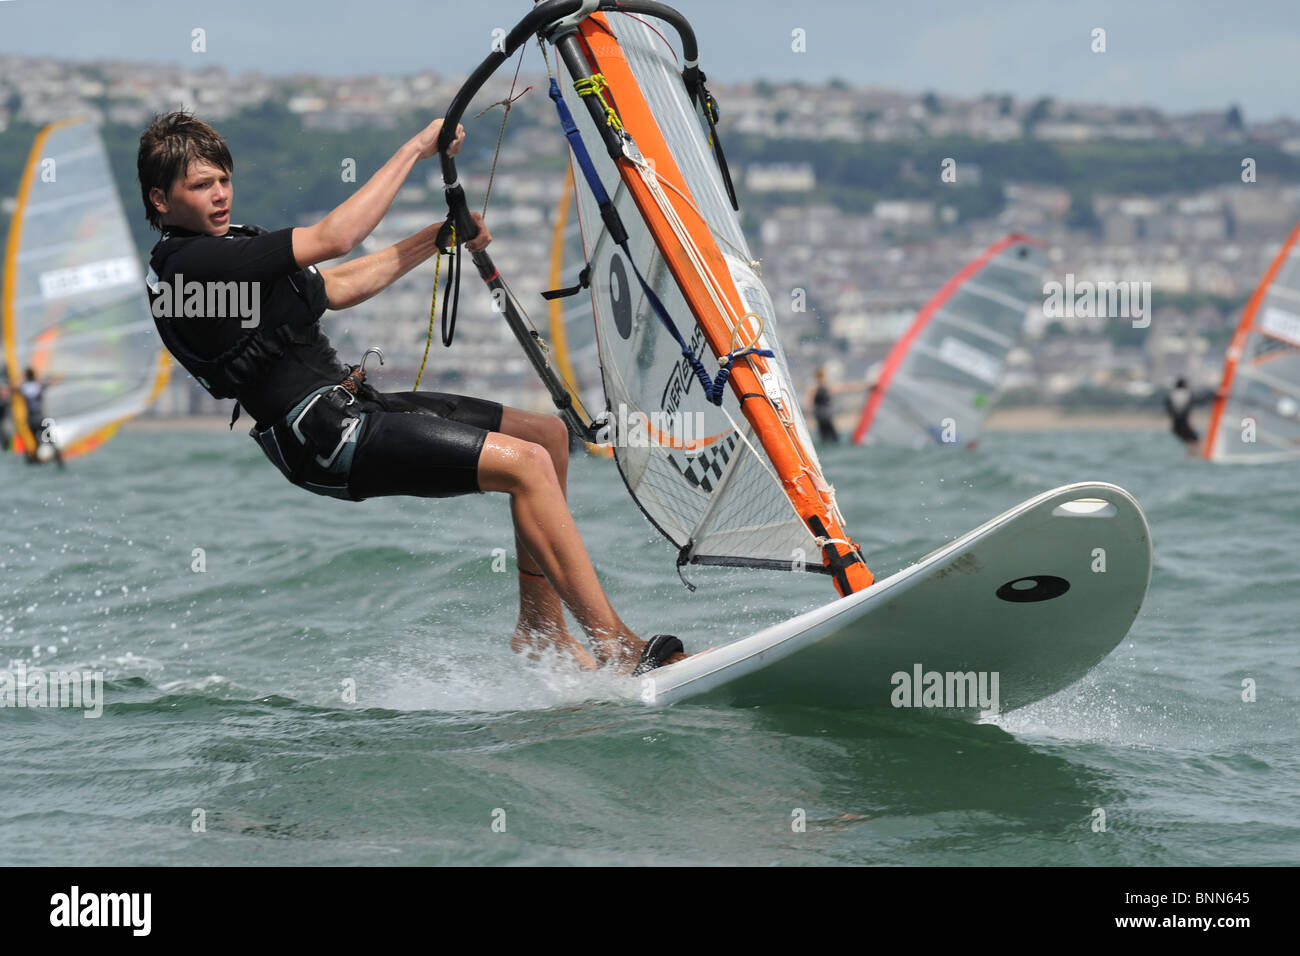 youth windsurfer  heads upwind with hands gripping boom and board flying over the waves, Swansea Bay site of Tidal Stock Photo